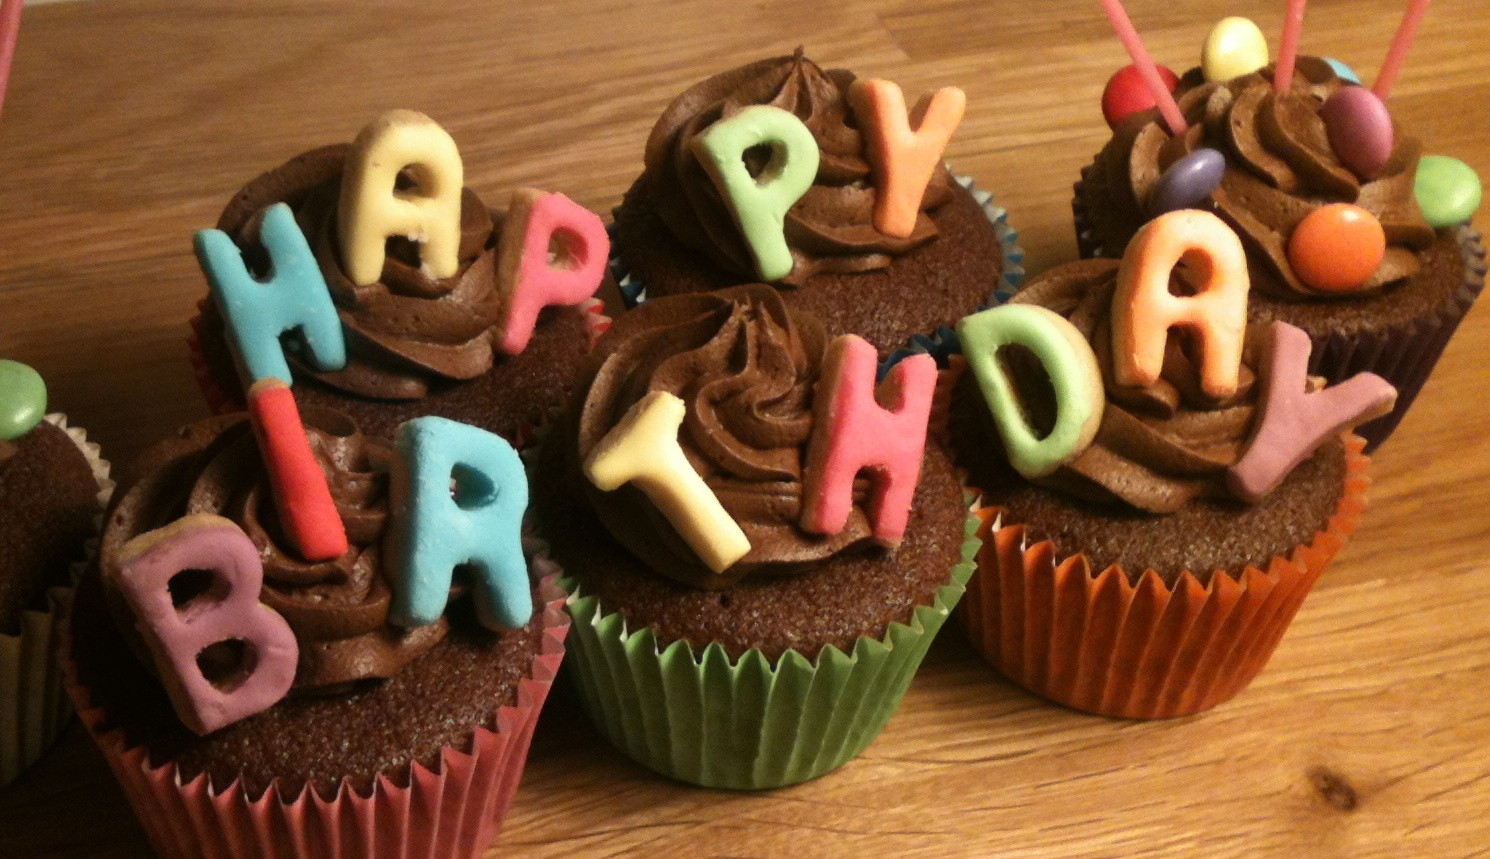 http://www.teleread.com/wp-content/uploads/2013/06/happy-birthday-cupcakes.jpg